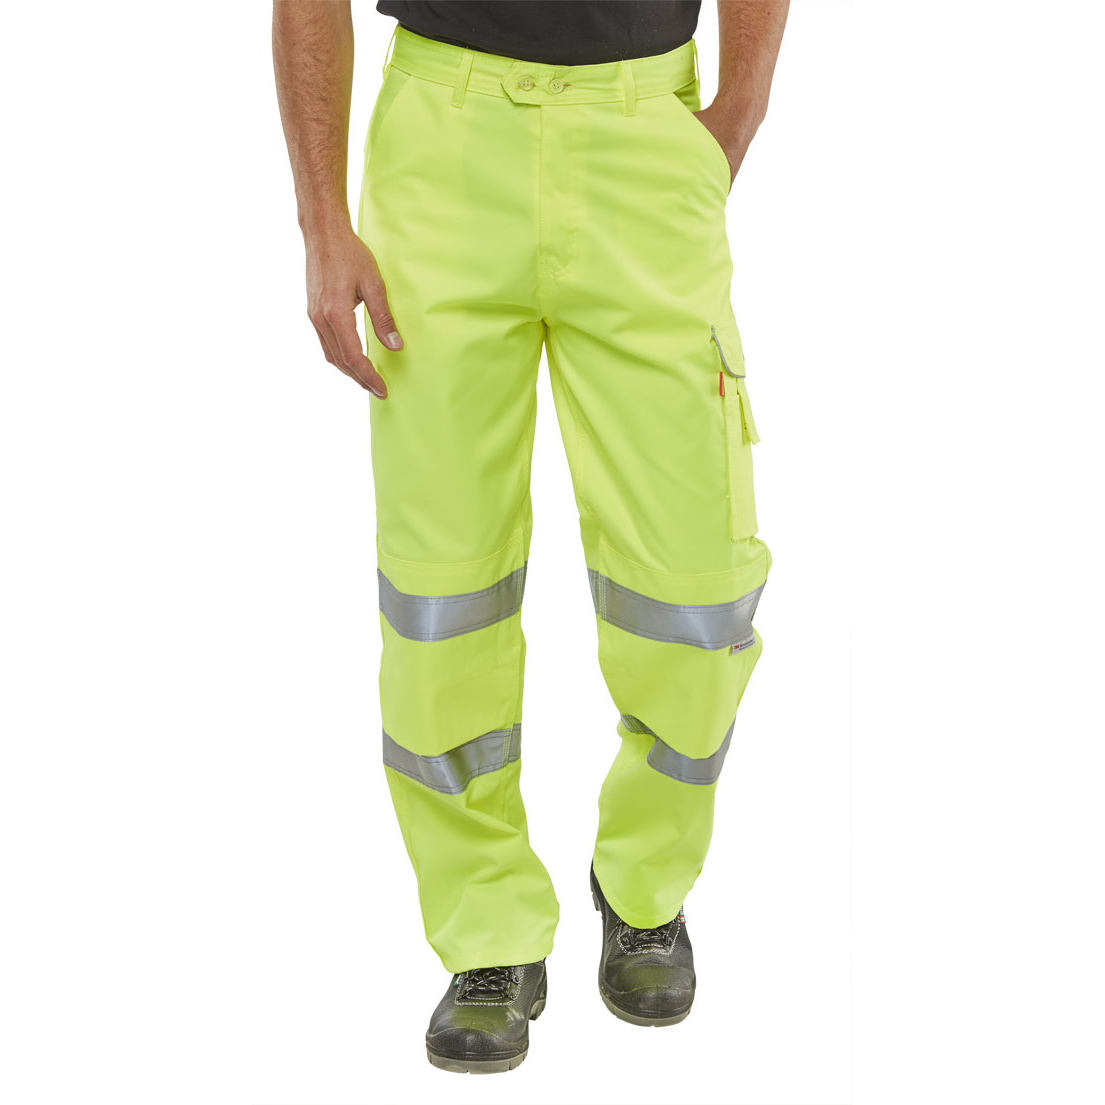 Ladies BSeen Trousers Polycotton Hi-Vis EN471 Saturn Yellow 32 Long Ref PCTENSY32T *Up to 3 Day Leadtime*